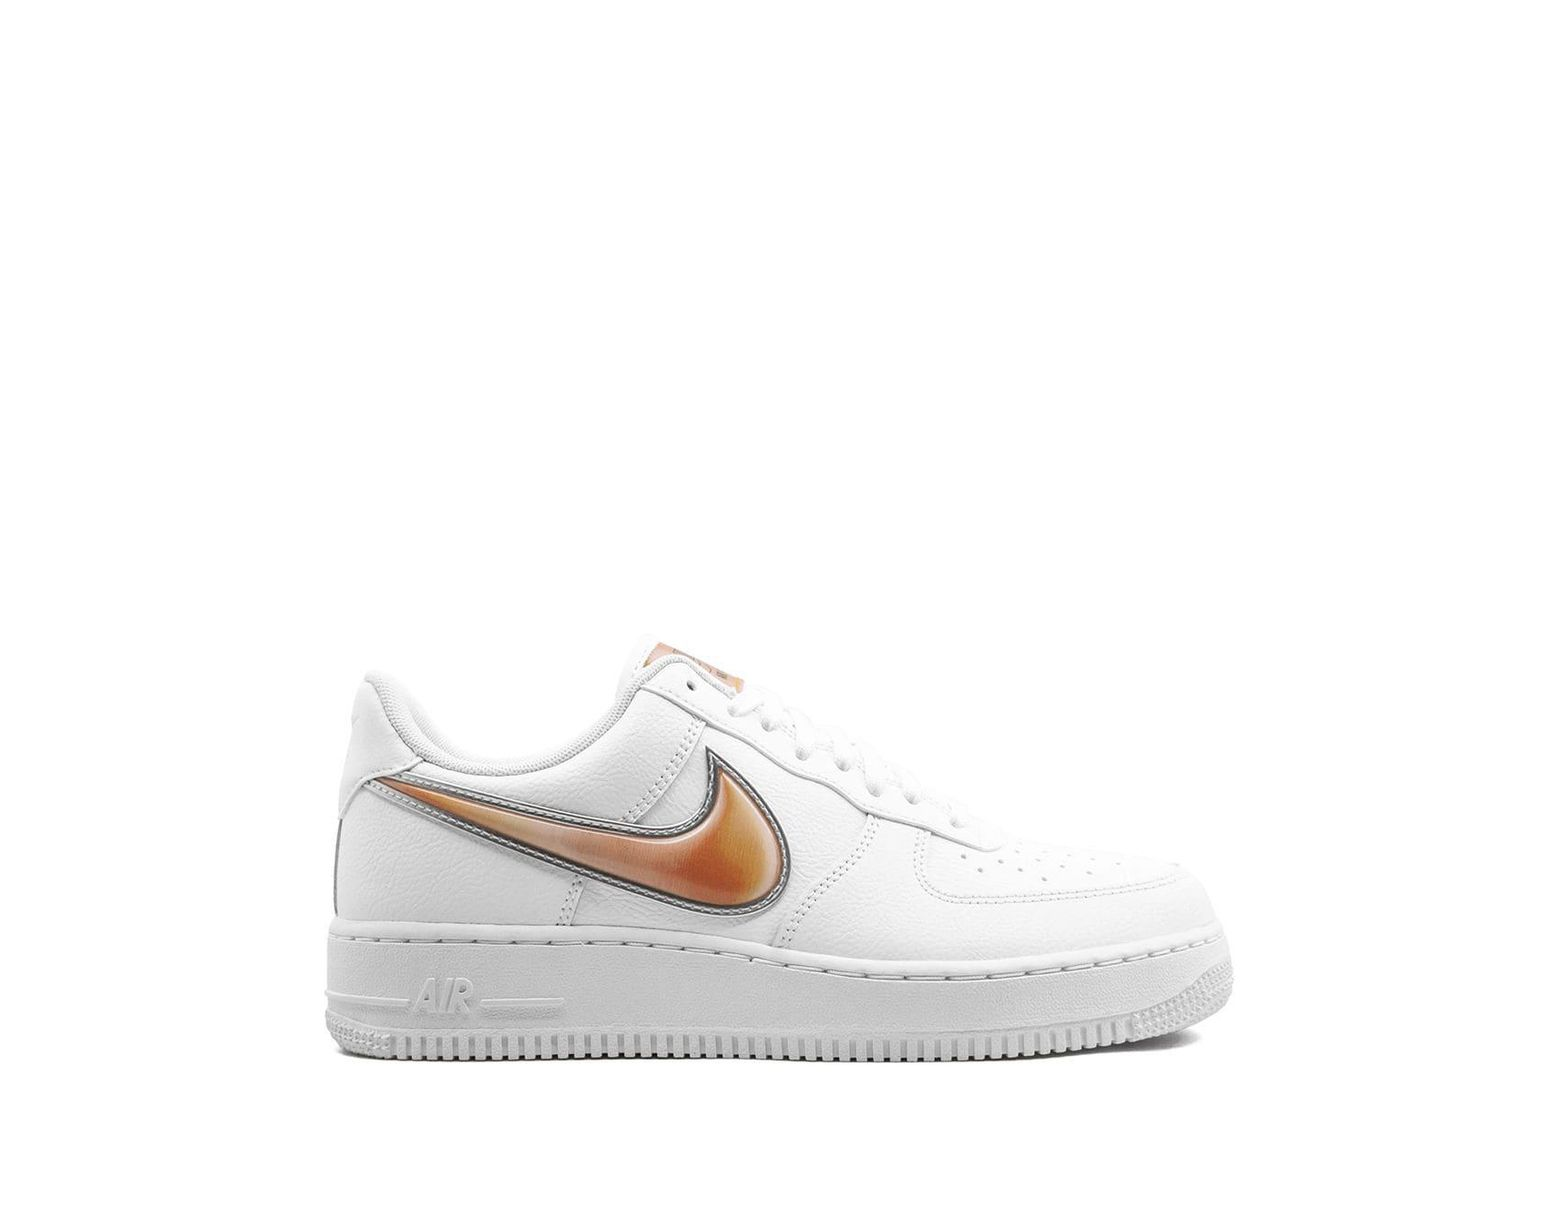 hot sale online b9181 19781 Nike Air Force 1 Low Oversized Swoosh Sneakers in White for ...